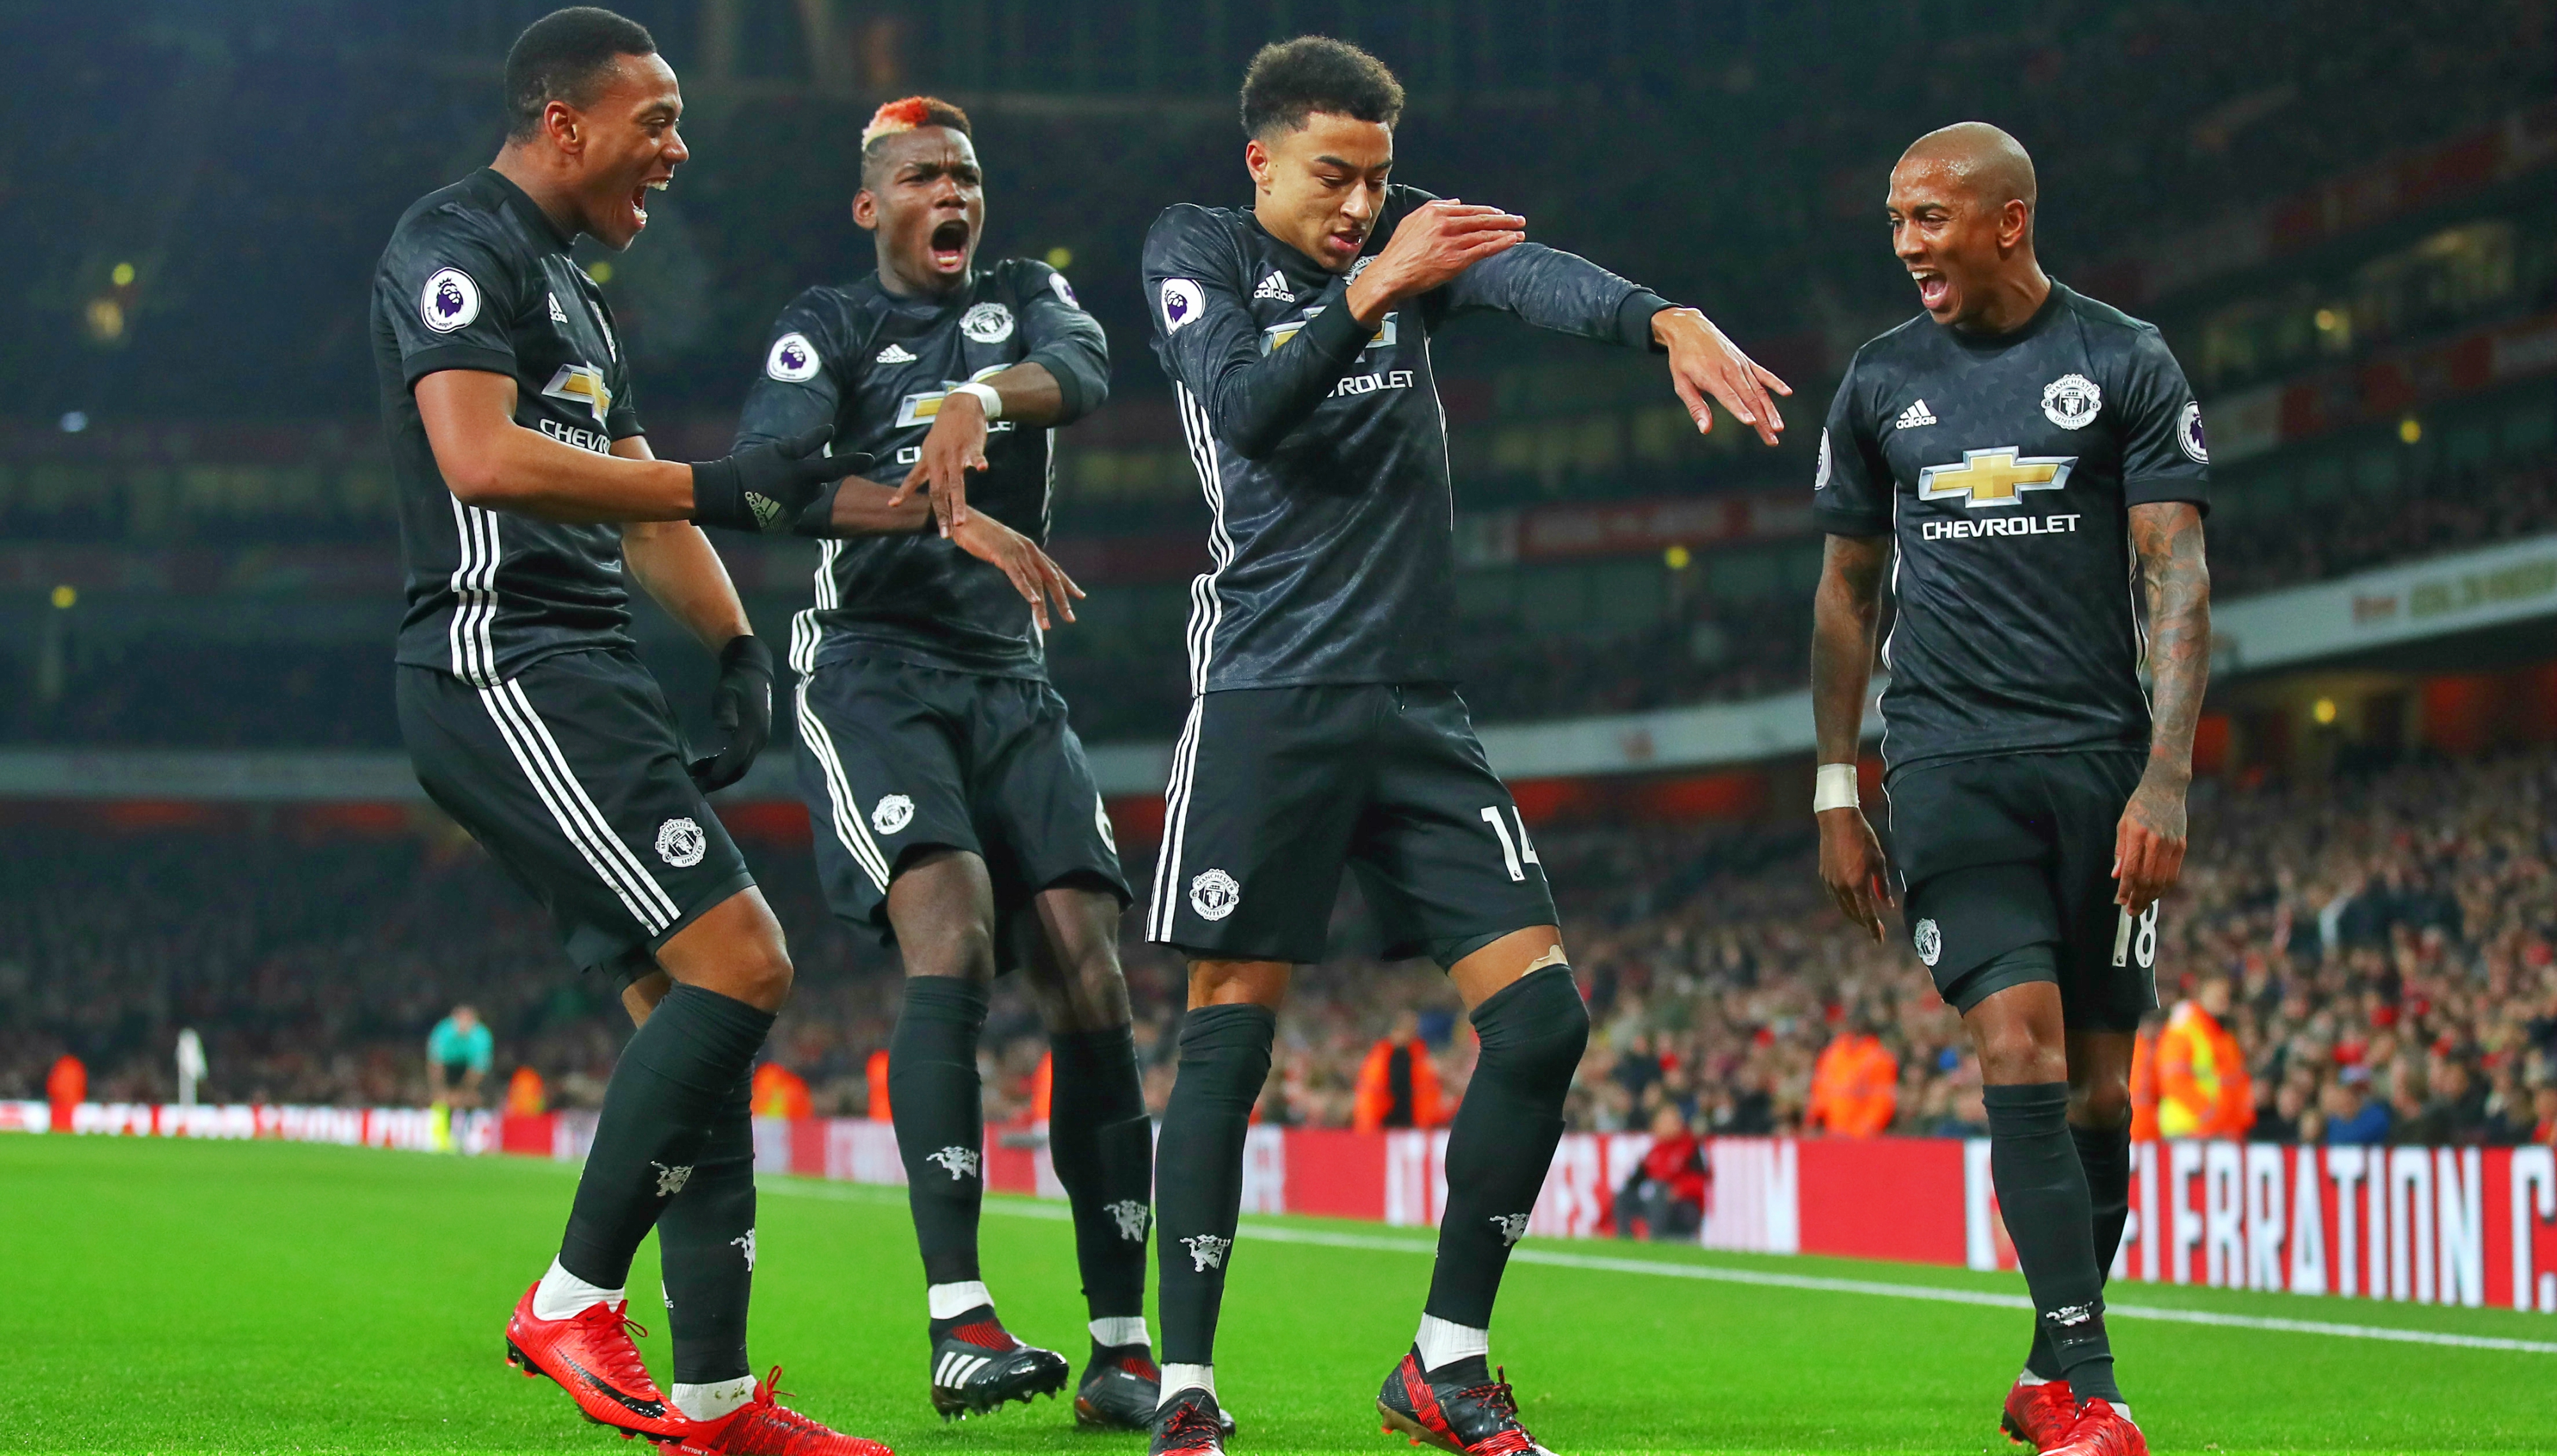 Man United News  Jesse Lingard  the man who dances to his own beat     Man United News  Jesse Lingard  the man who dances to his own beat but is  now finding his rhythm at Man United   Article   Sport360